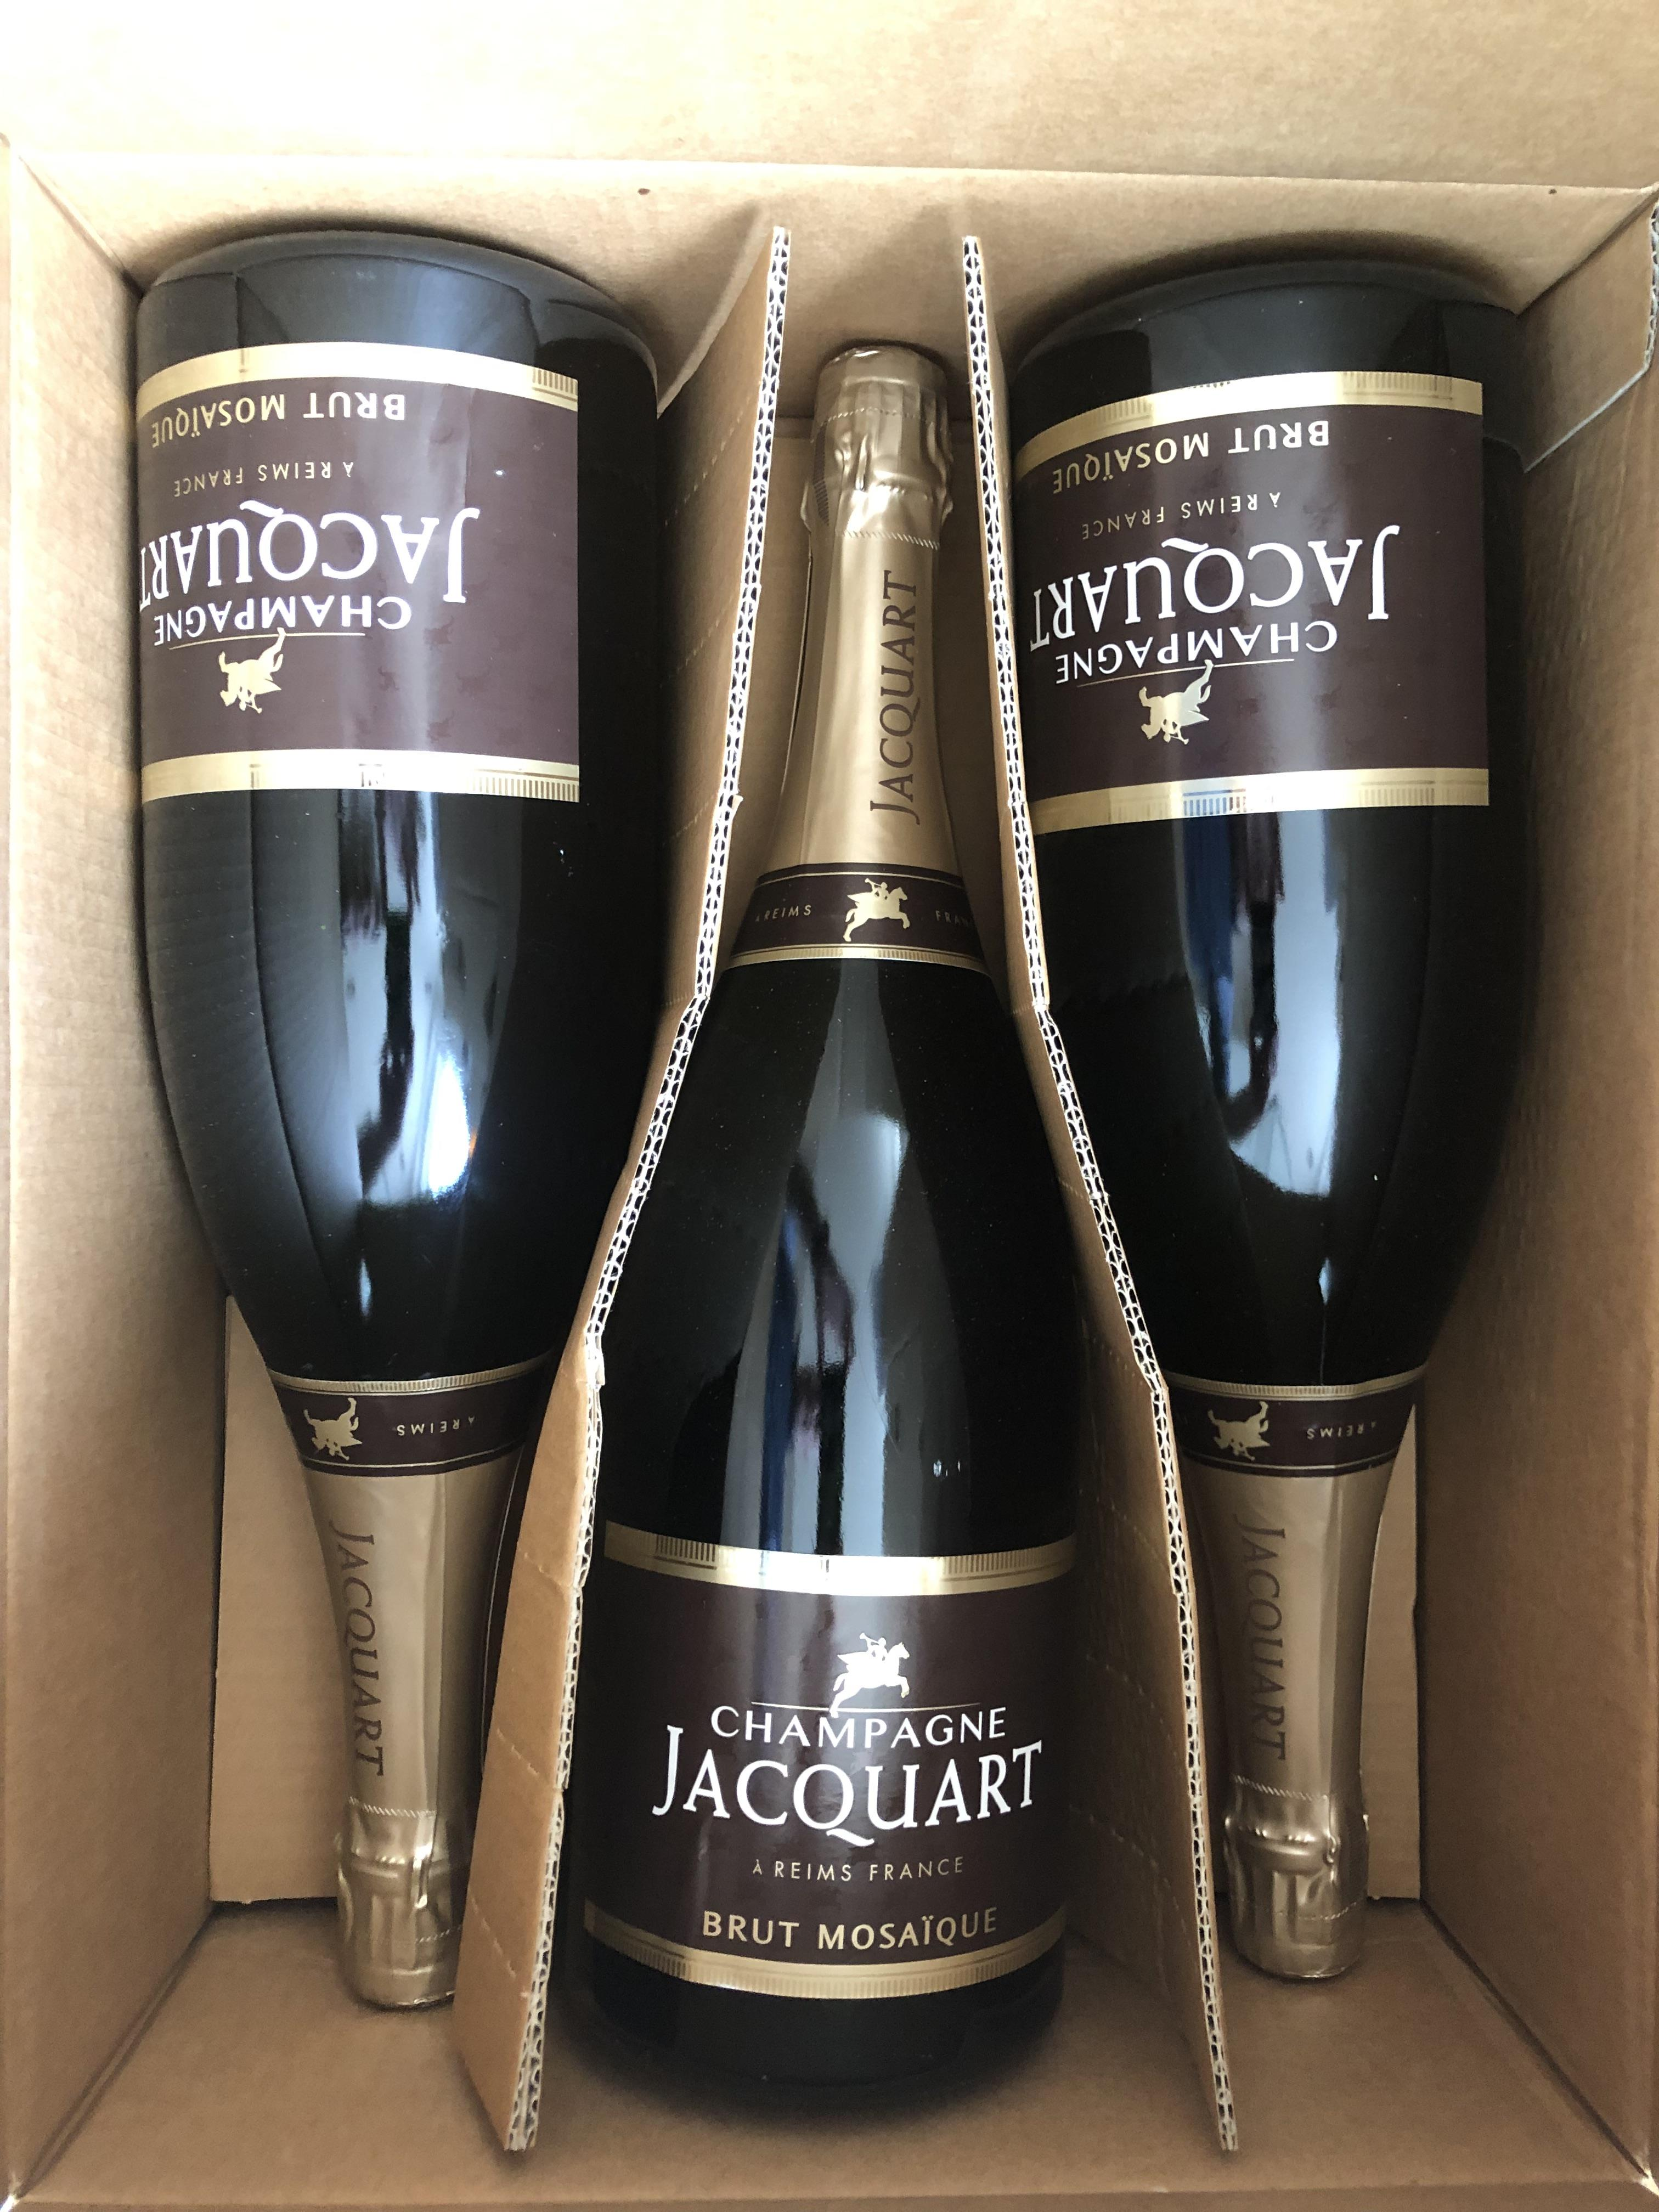 Lot 30 - NV Brut Mosaique, Jacquart, Champagne, France, 3 magnums